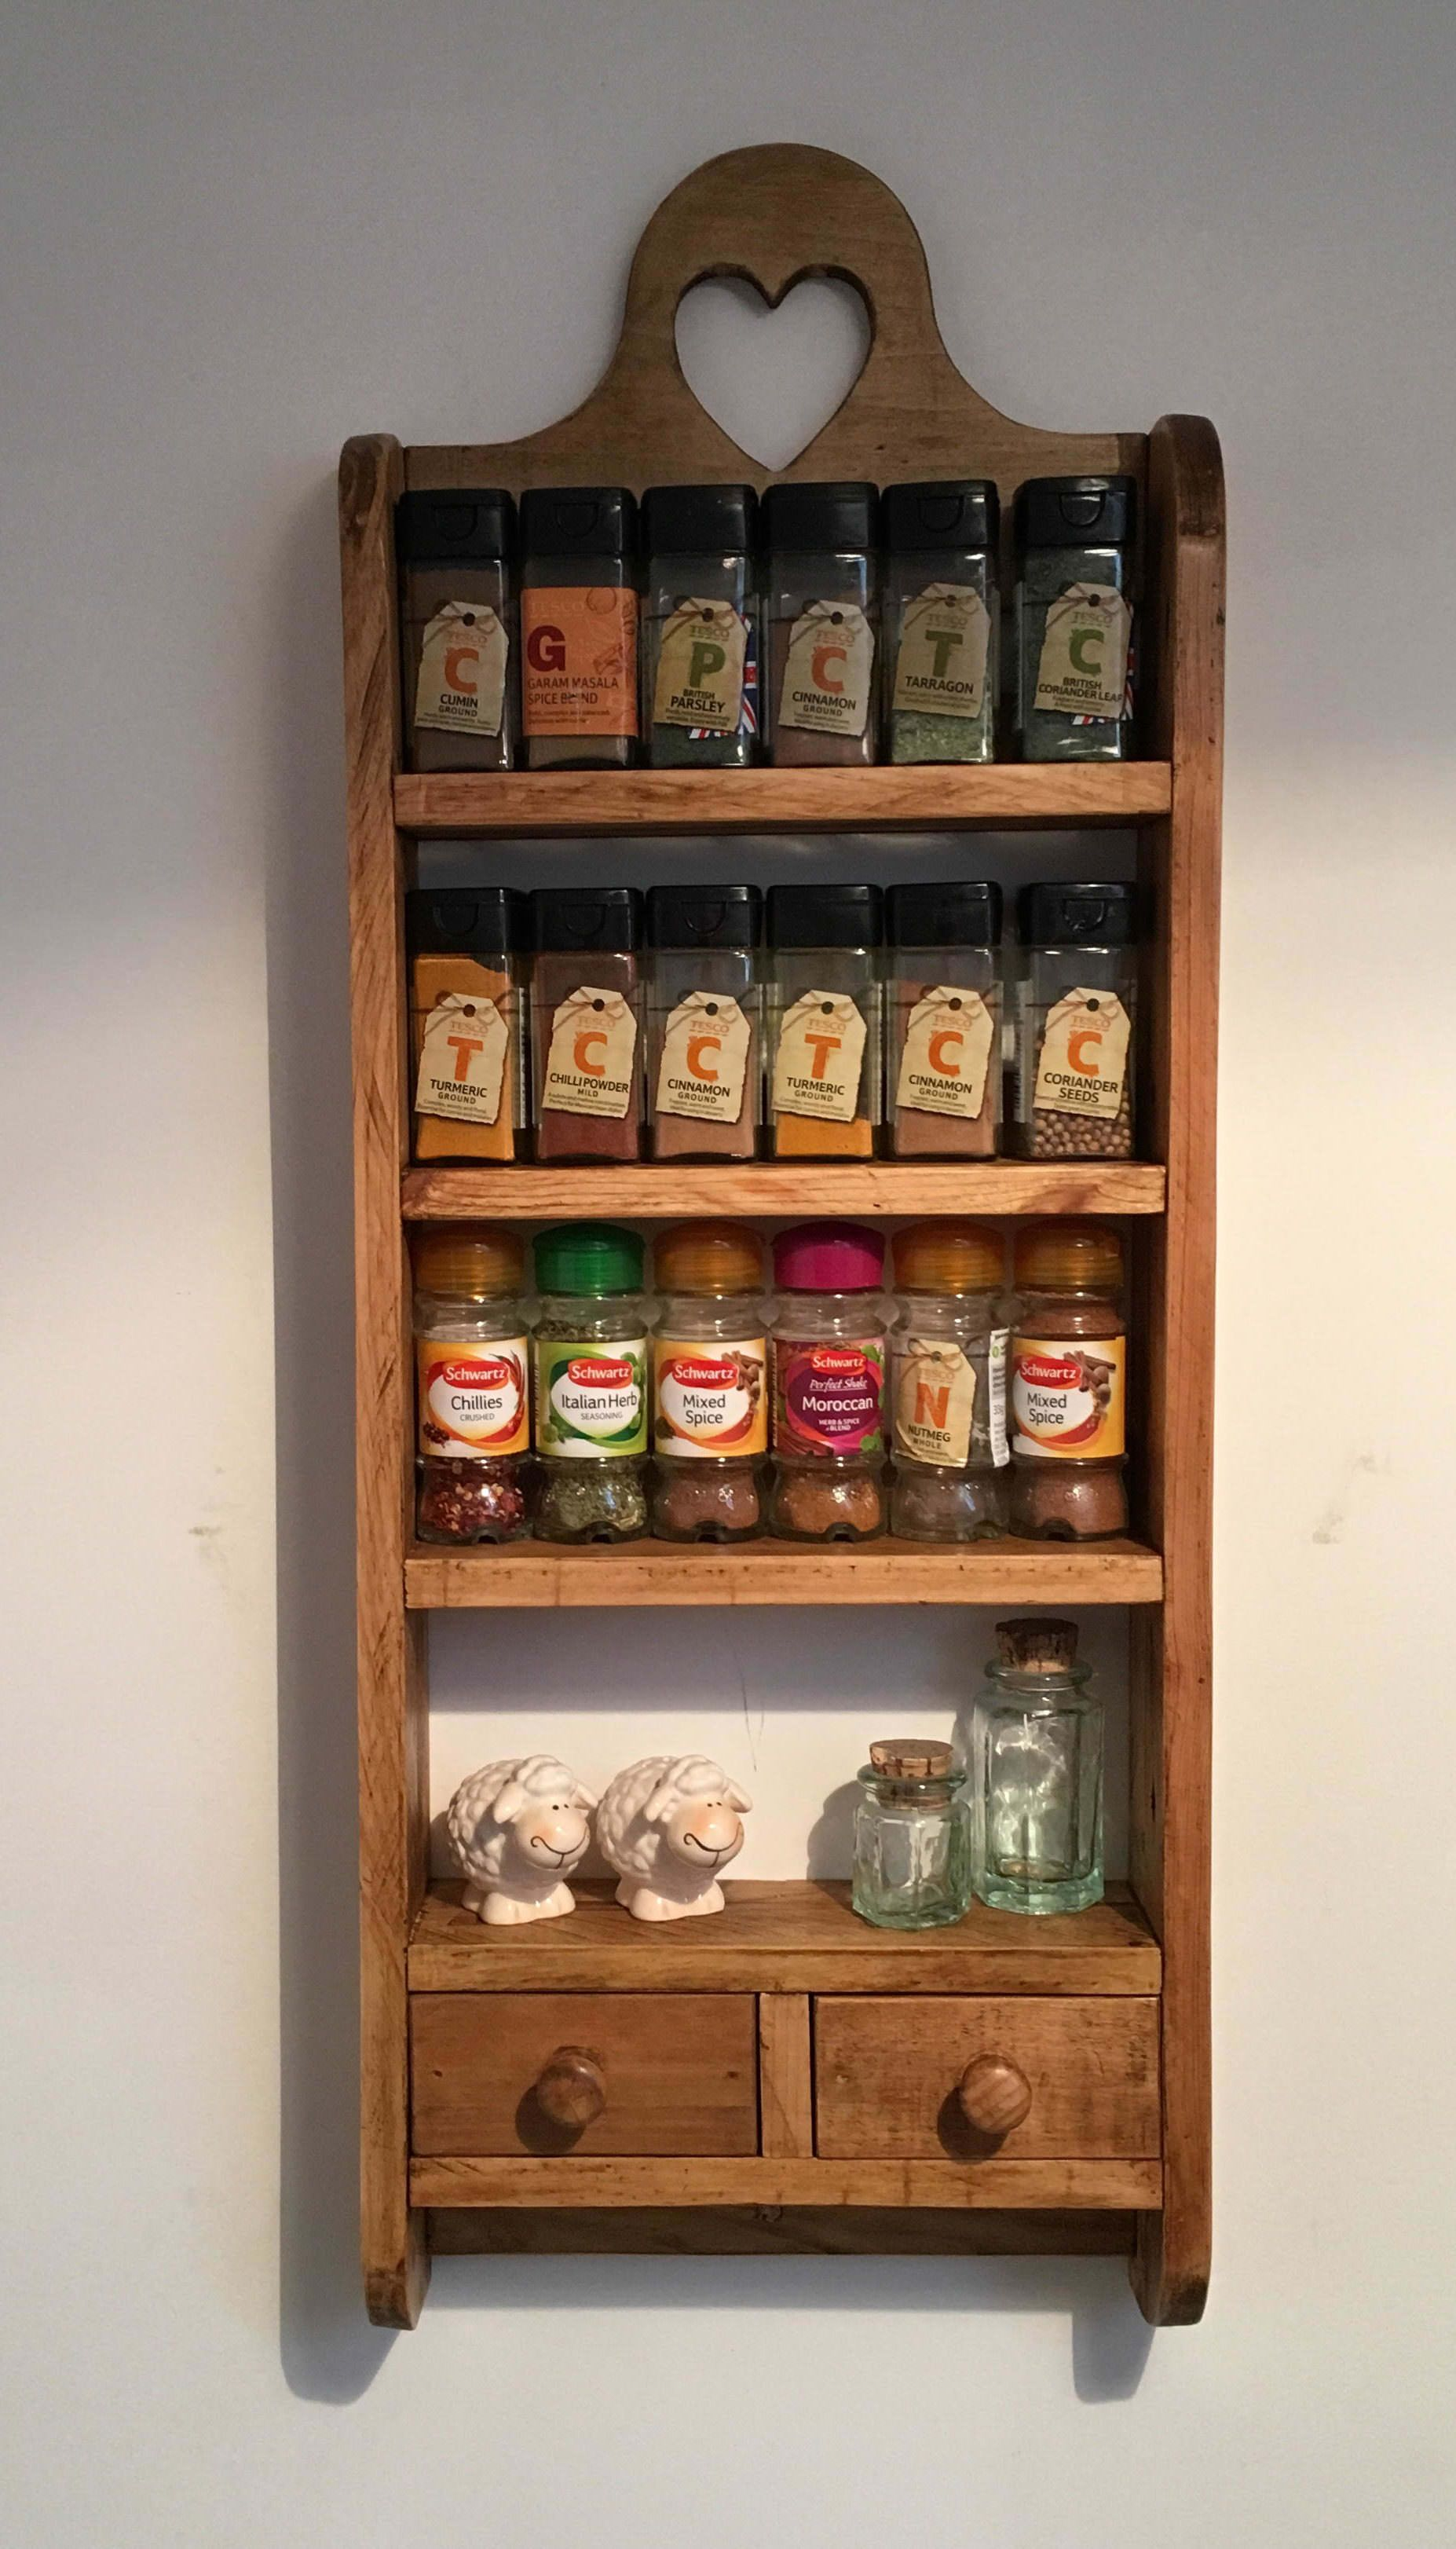 I made this 2 drawer pallet spice rack from a combination of 2 pallets it has curved sides and a decorative heart cutout and sealed with wax